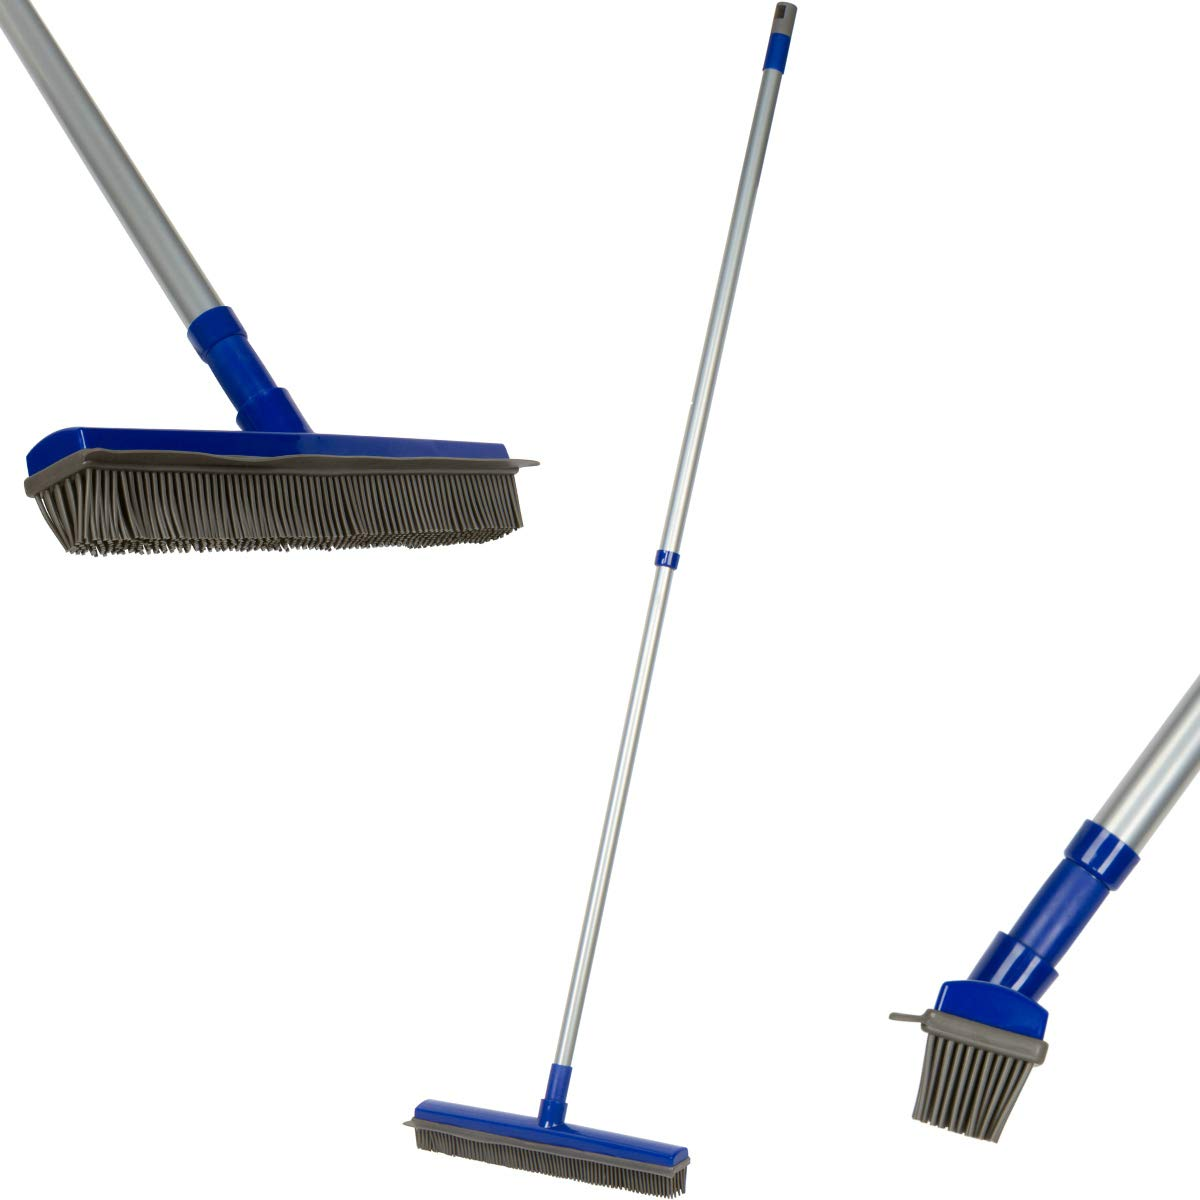 Fur Buster Rubber Broom with Squeegee - Pet Hair Removal -Dog Hair - Cat Hair - Water Spills - Multipurpose Surfaces - Extendable Pole Makes Cleaning Easy by Fox Trot